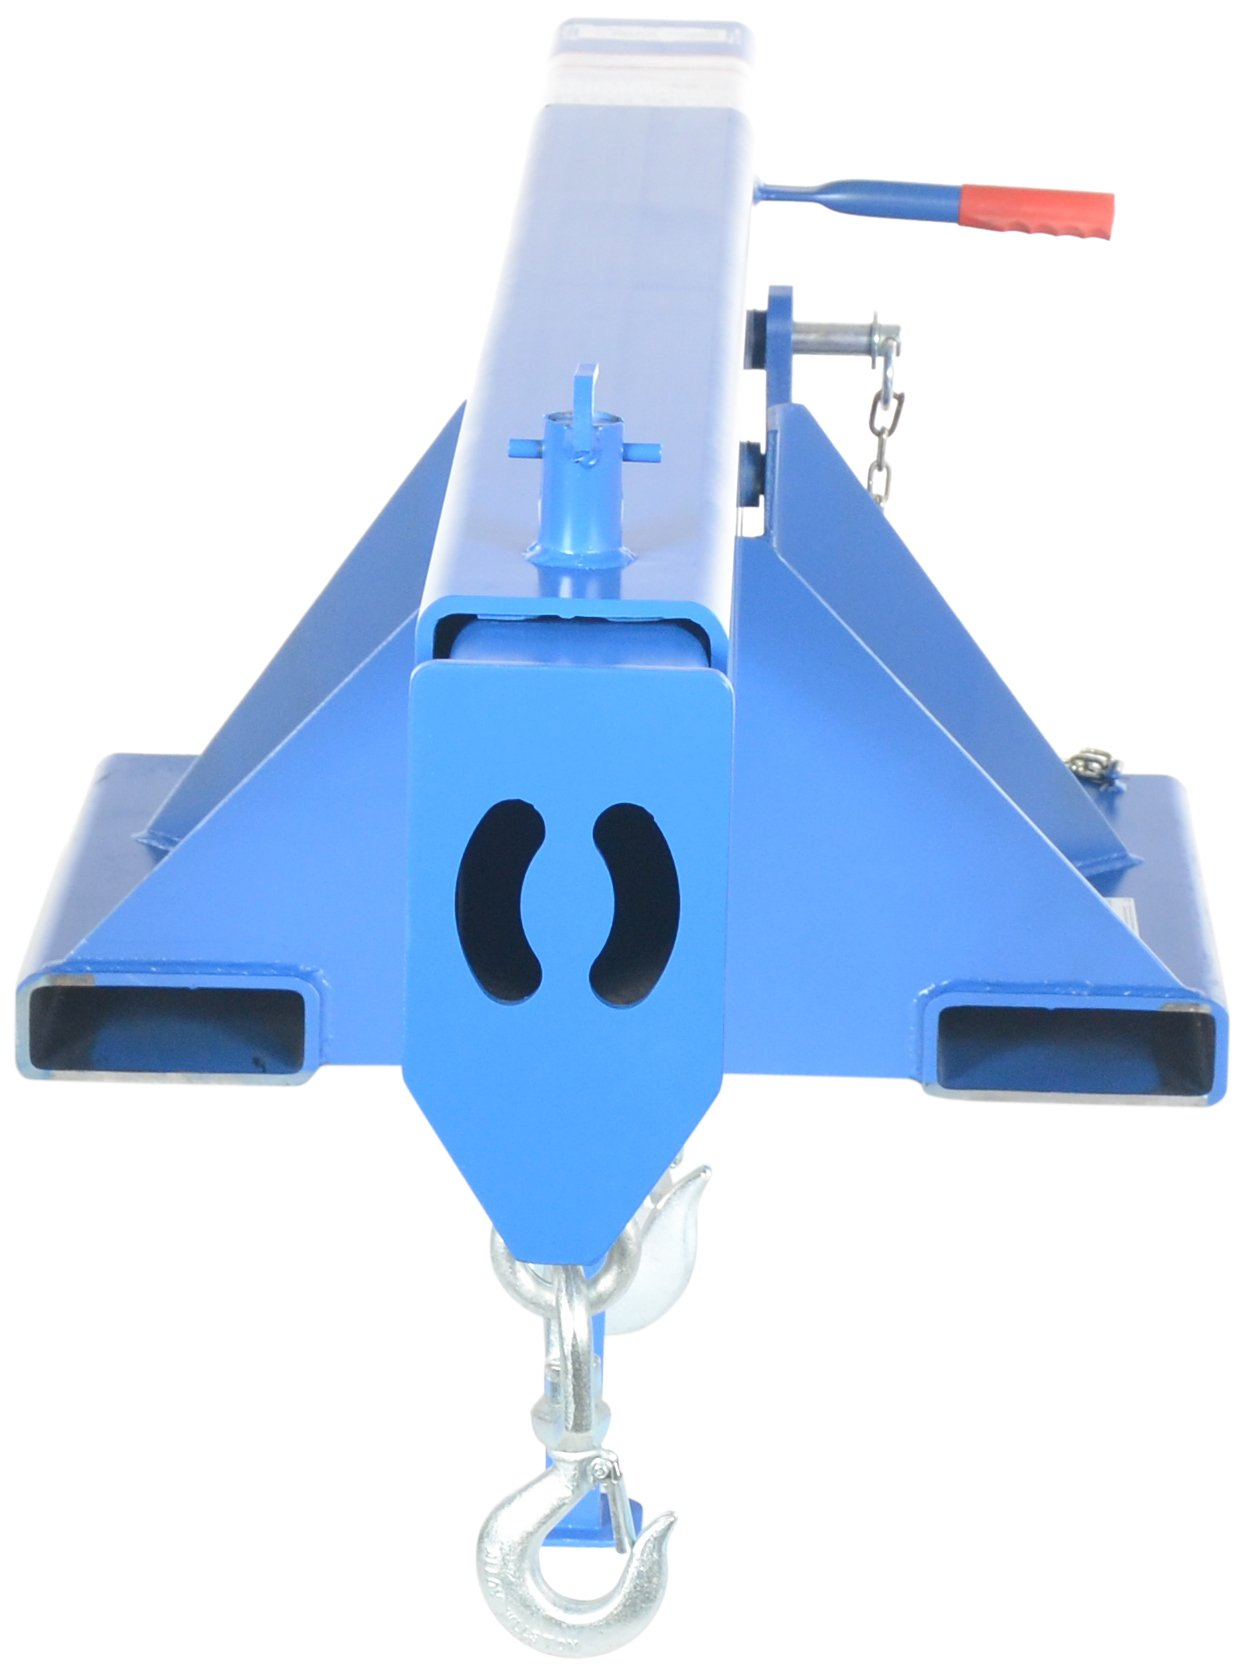 Vestil LM-OBNT-8-24 Orbit Non-Telescoping Lift Boom, 8000 lb Capacity, 24'' Fork Pocket Center, Overall LxWxH (in.) 32 x 79.5 x 25.125, Overall Extended Length (in.) 79-1/2, Blue